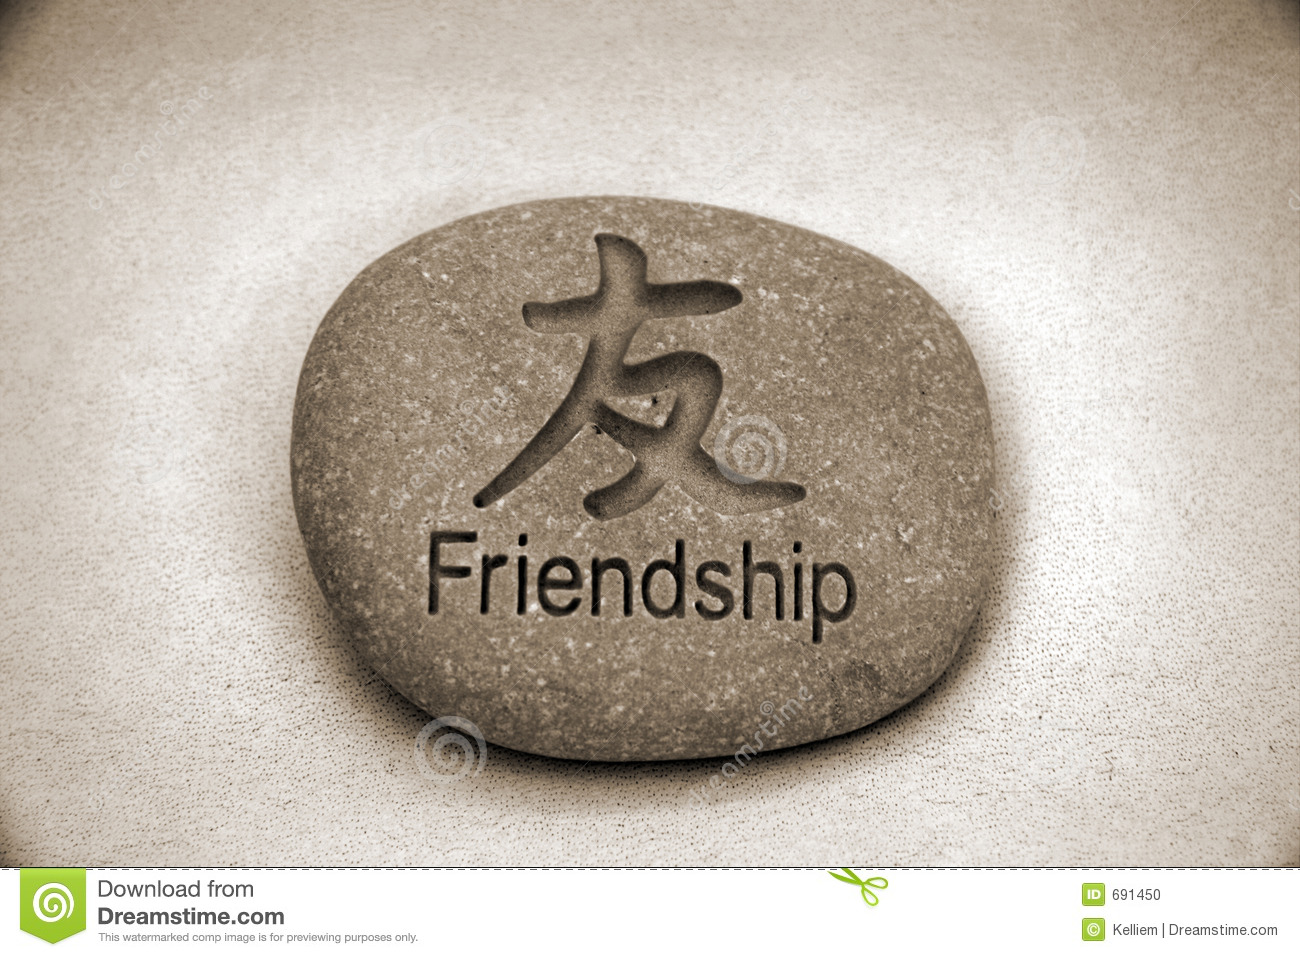 Friendship Rock Stock Photo - Image: 691450